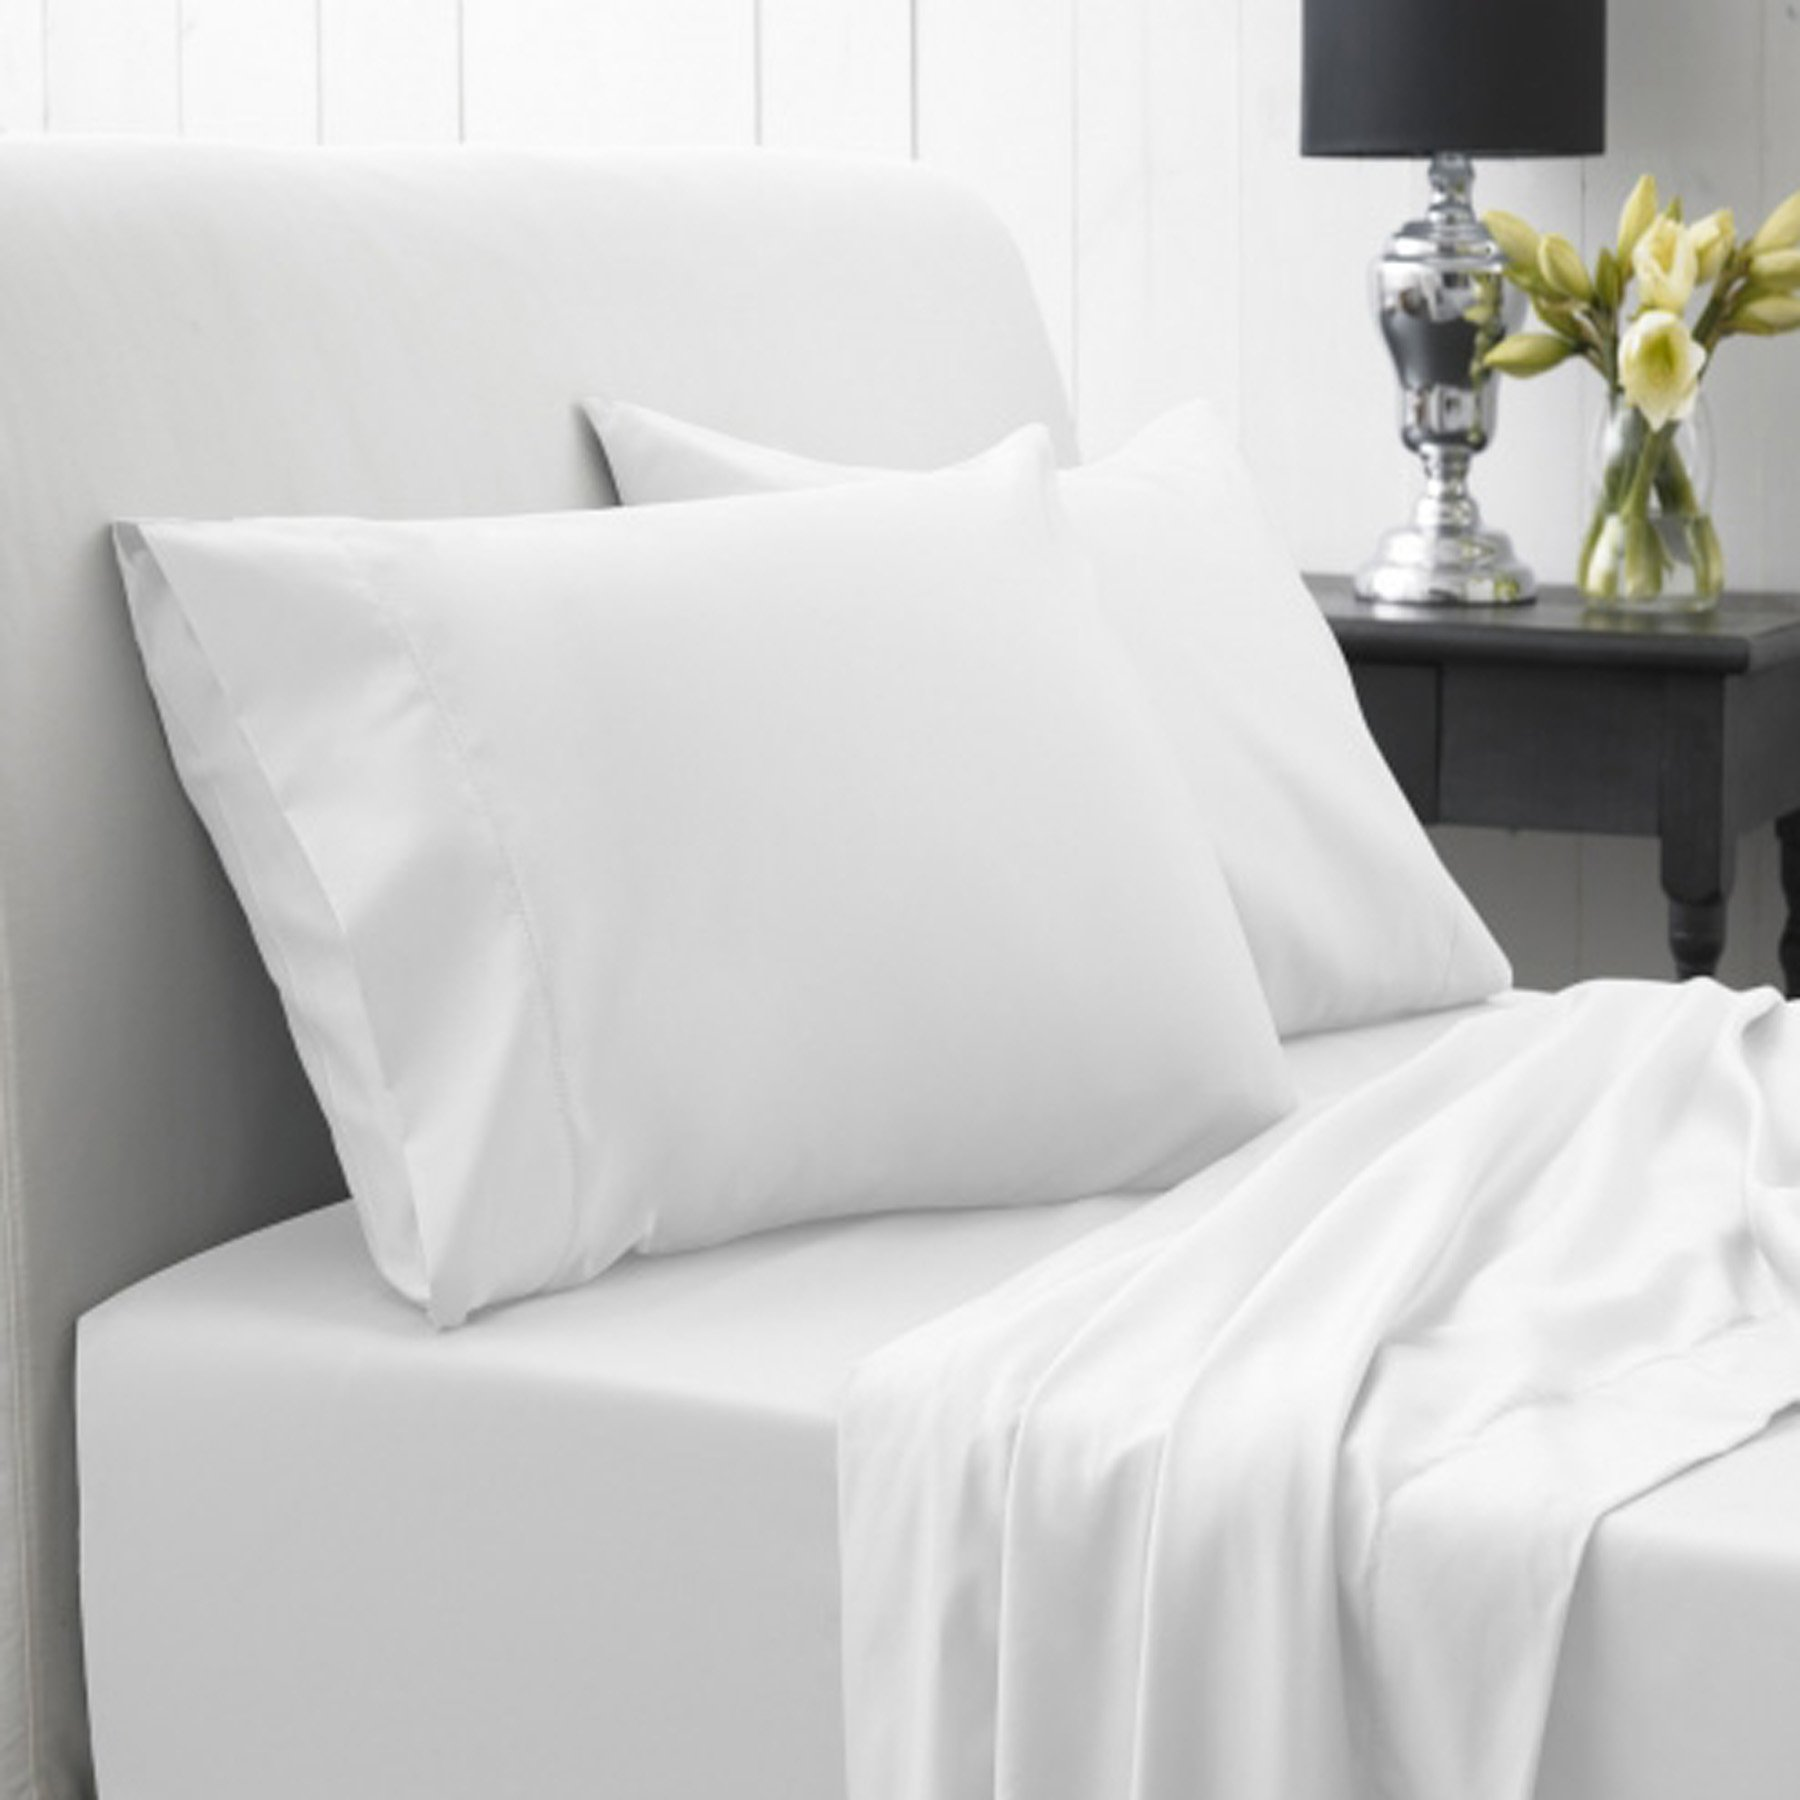 Spa 3 Piece Duvet Cover Set- 85%polyester, 15%cotton- King Size, White Color